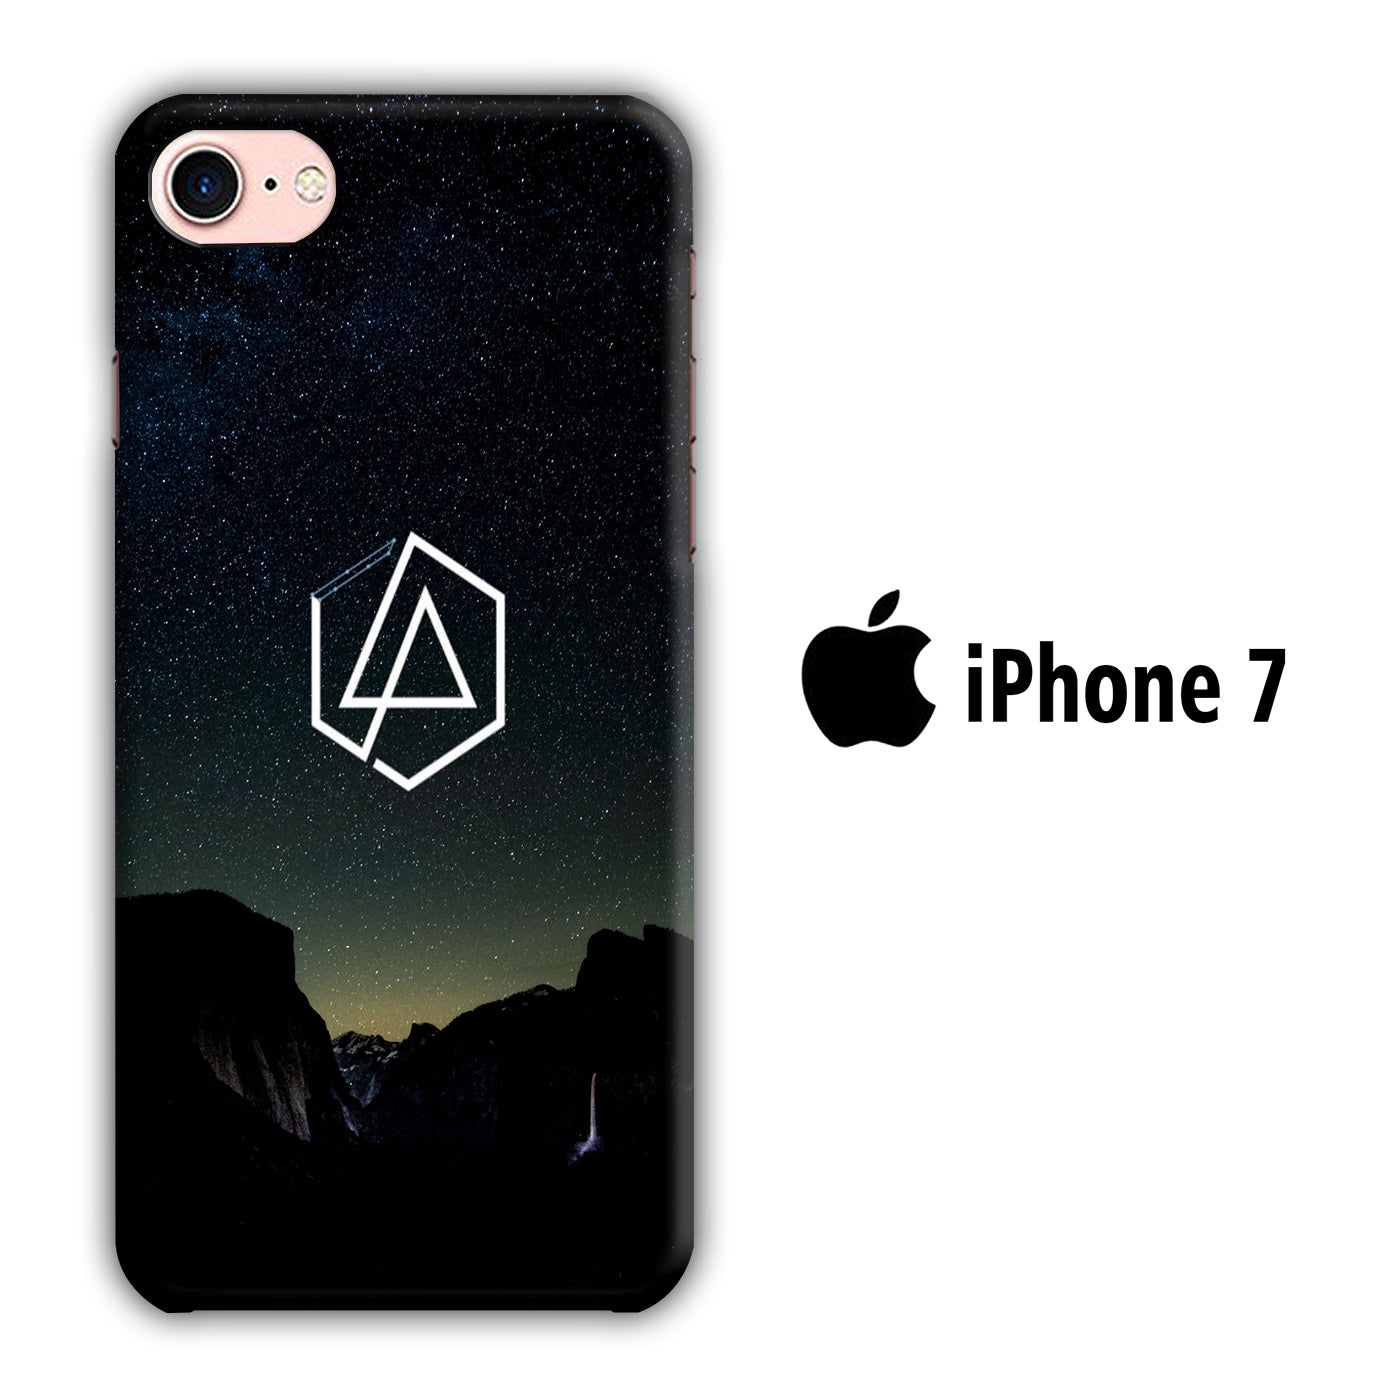 Linkin Park LP 006 iPhone 7 3D Case